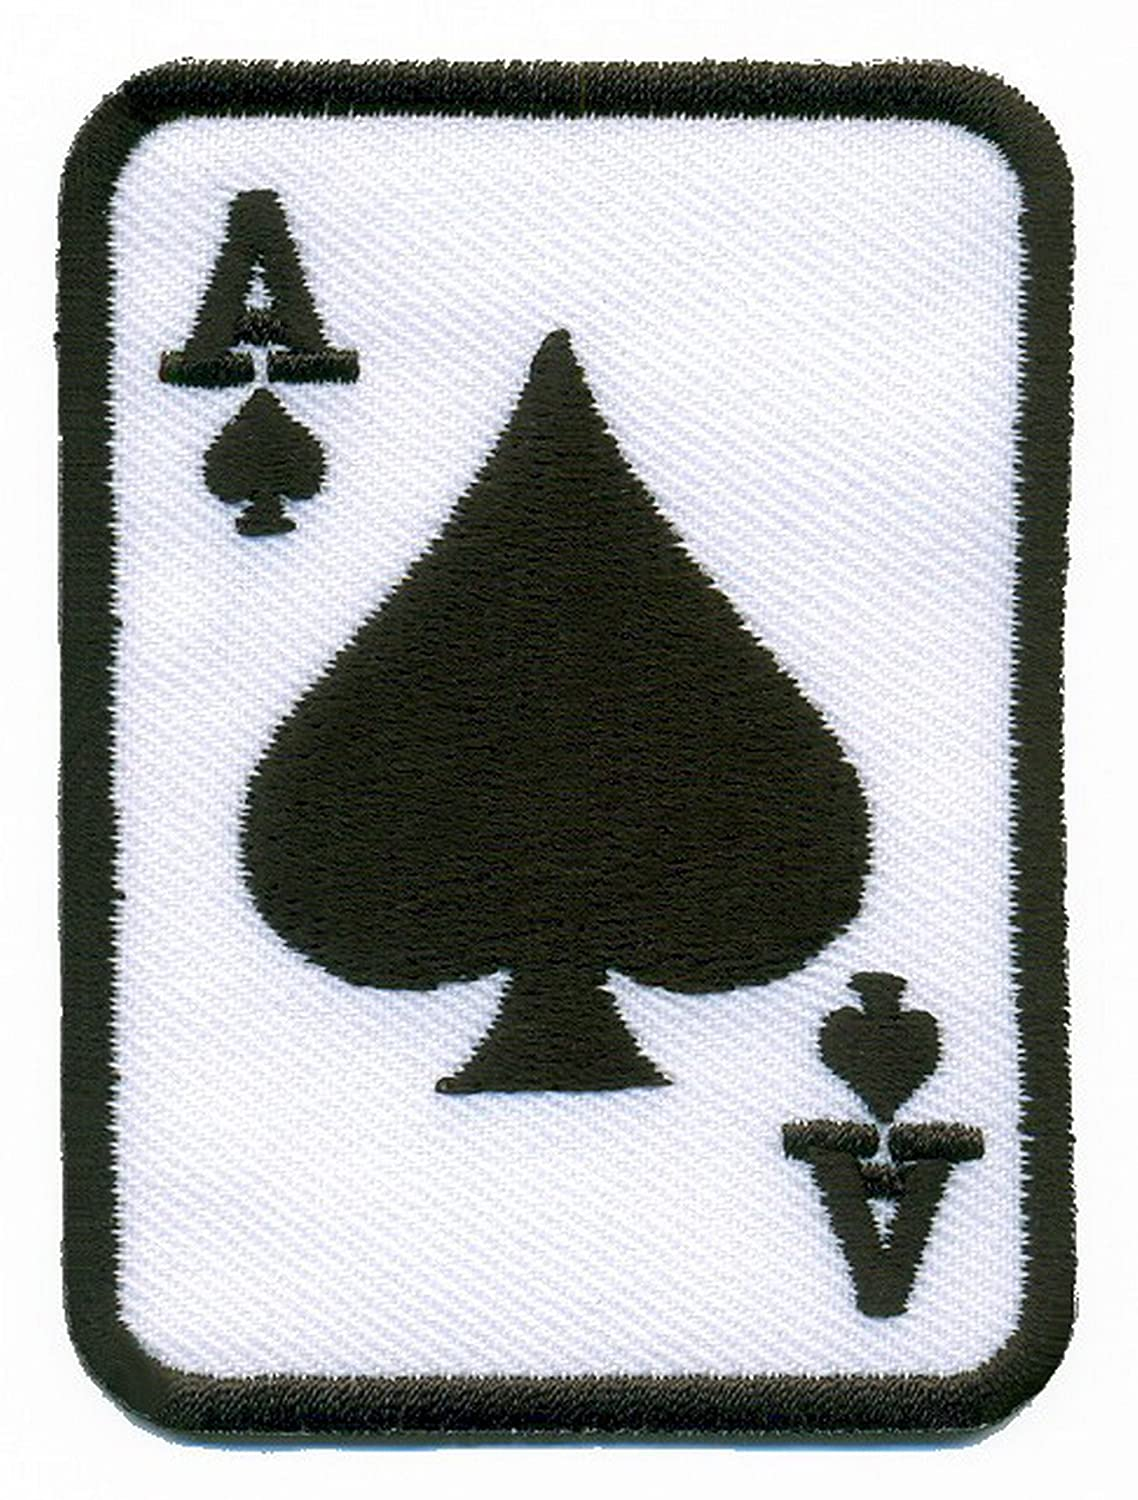 Ace of Spades black suit playing card poker retro casino biker rat pack applique iron-on patch new by TKPatch   B00RFADS1G